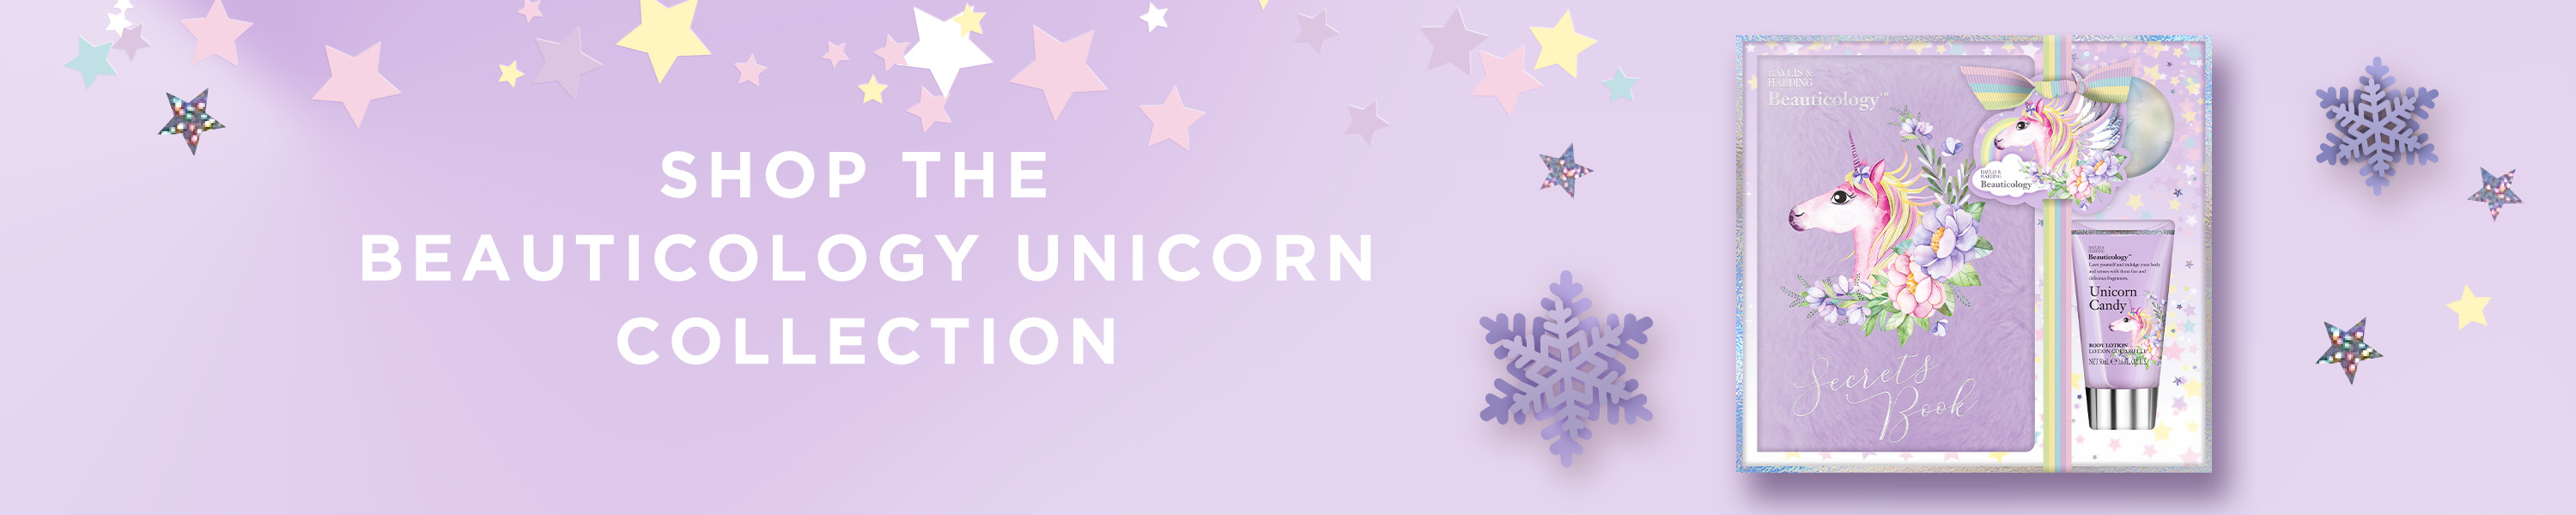 Image for Beauticology Unicorn Holiday